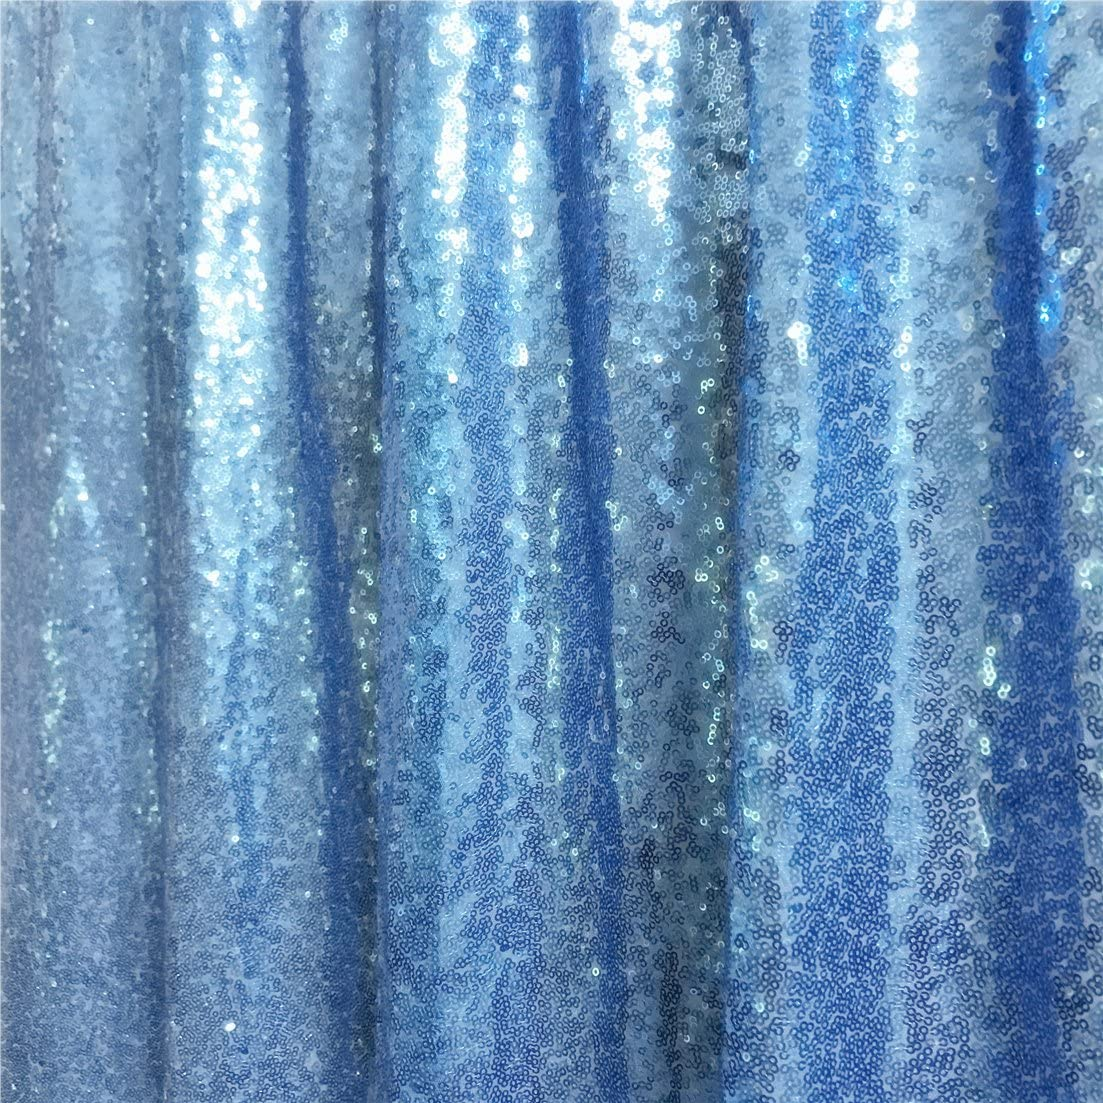 TRLYC Sequin Backdrop Window Curtain for Wedding Black 8FTX8FT High Weddings Party Decoration